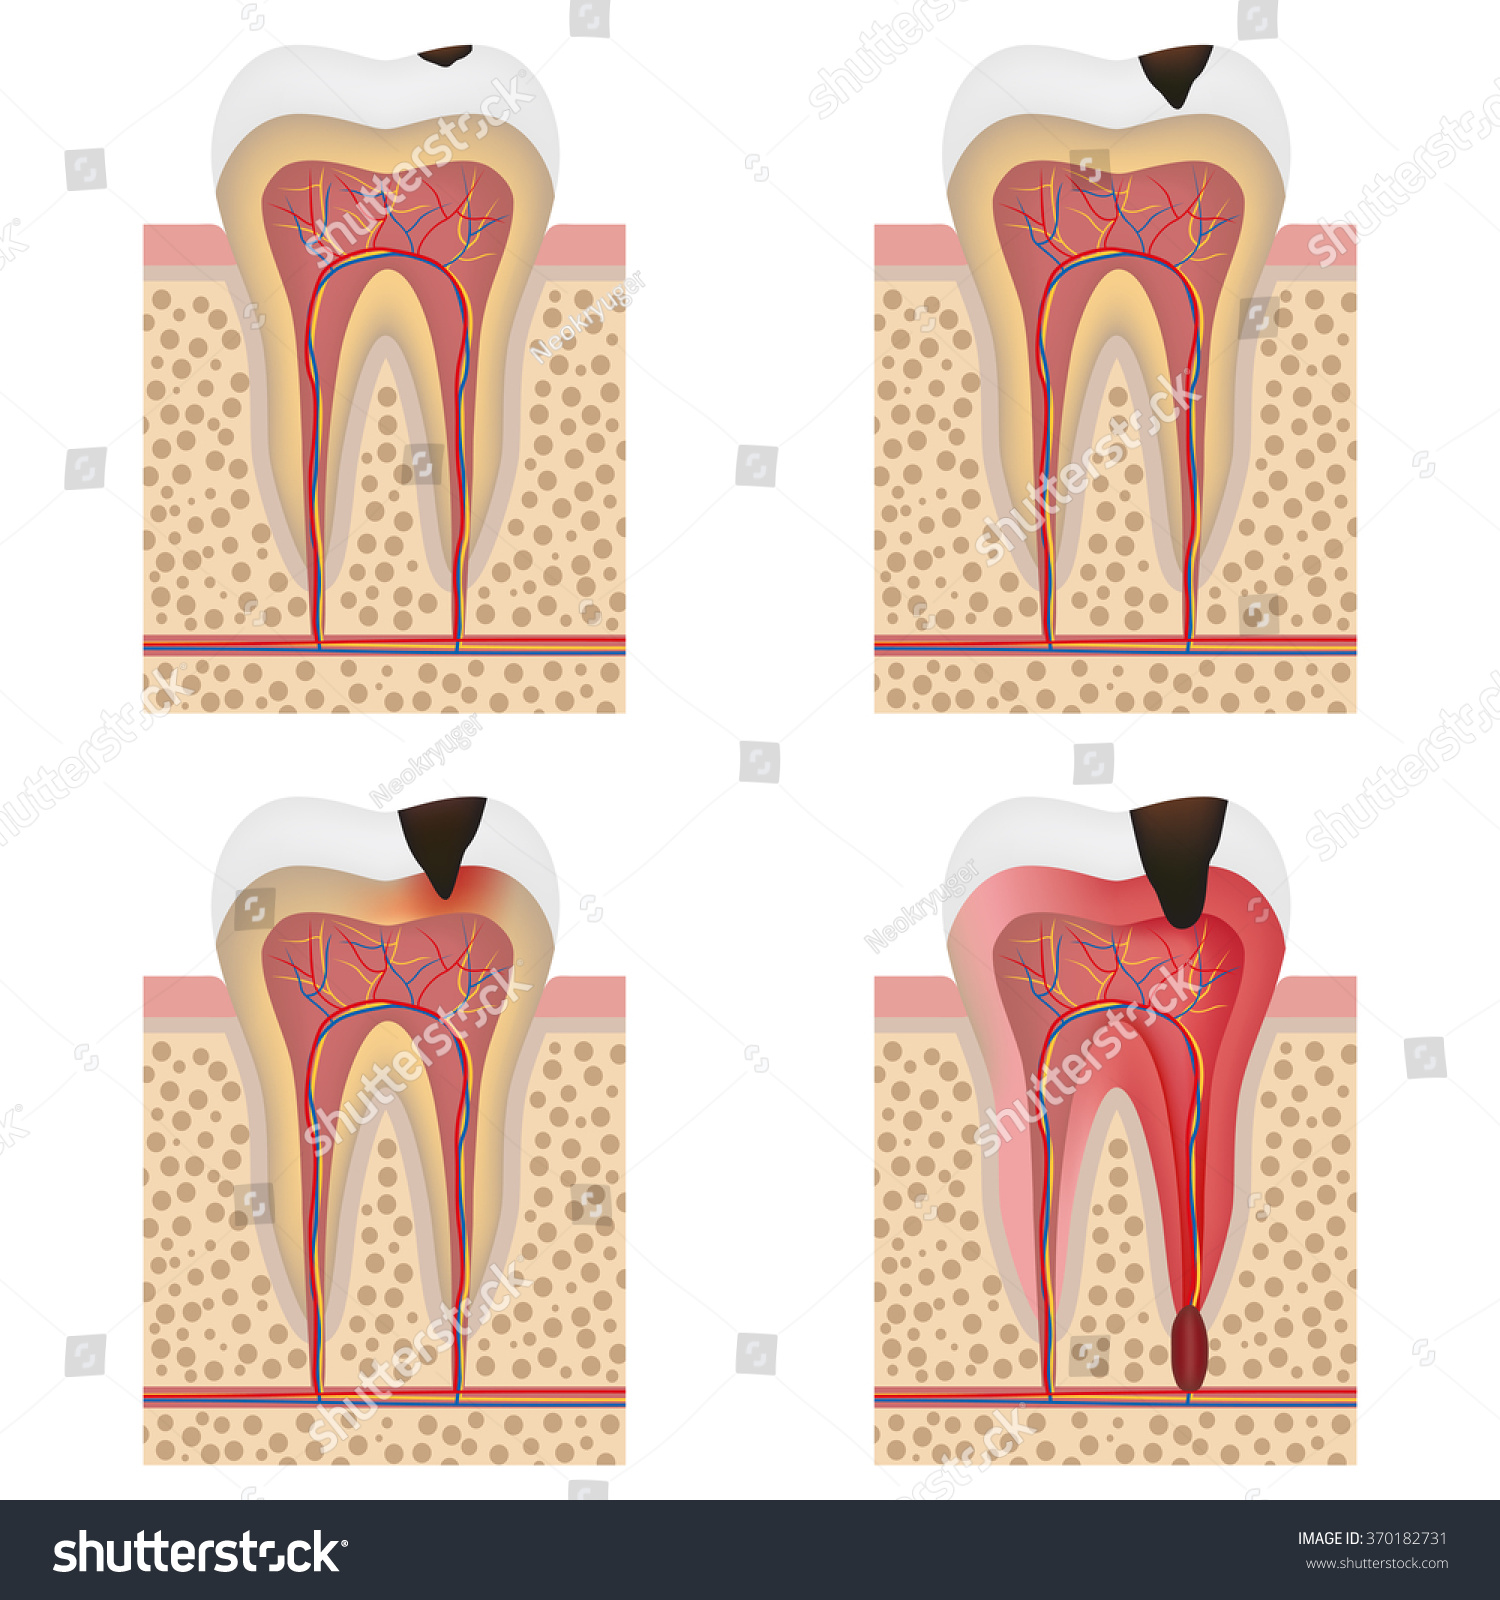 Stages Tooth Decay Illustration Development Dental Stock Vector ...